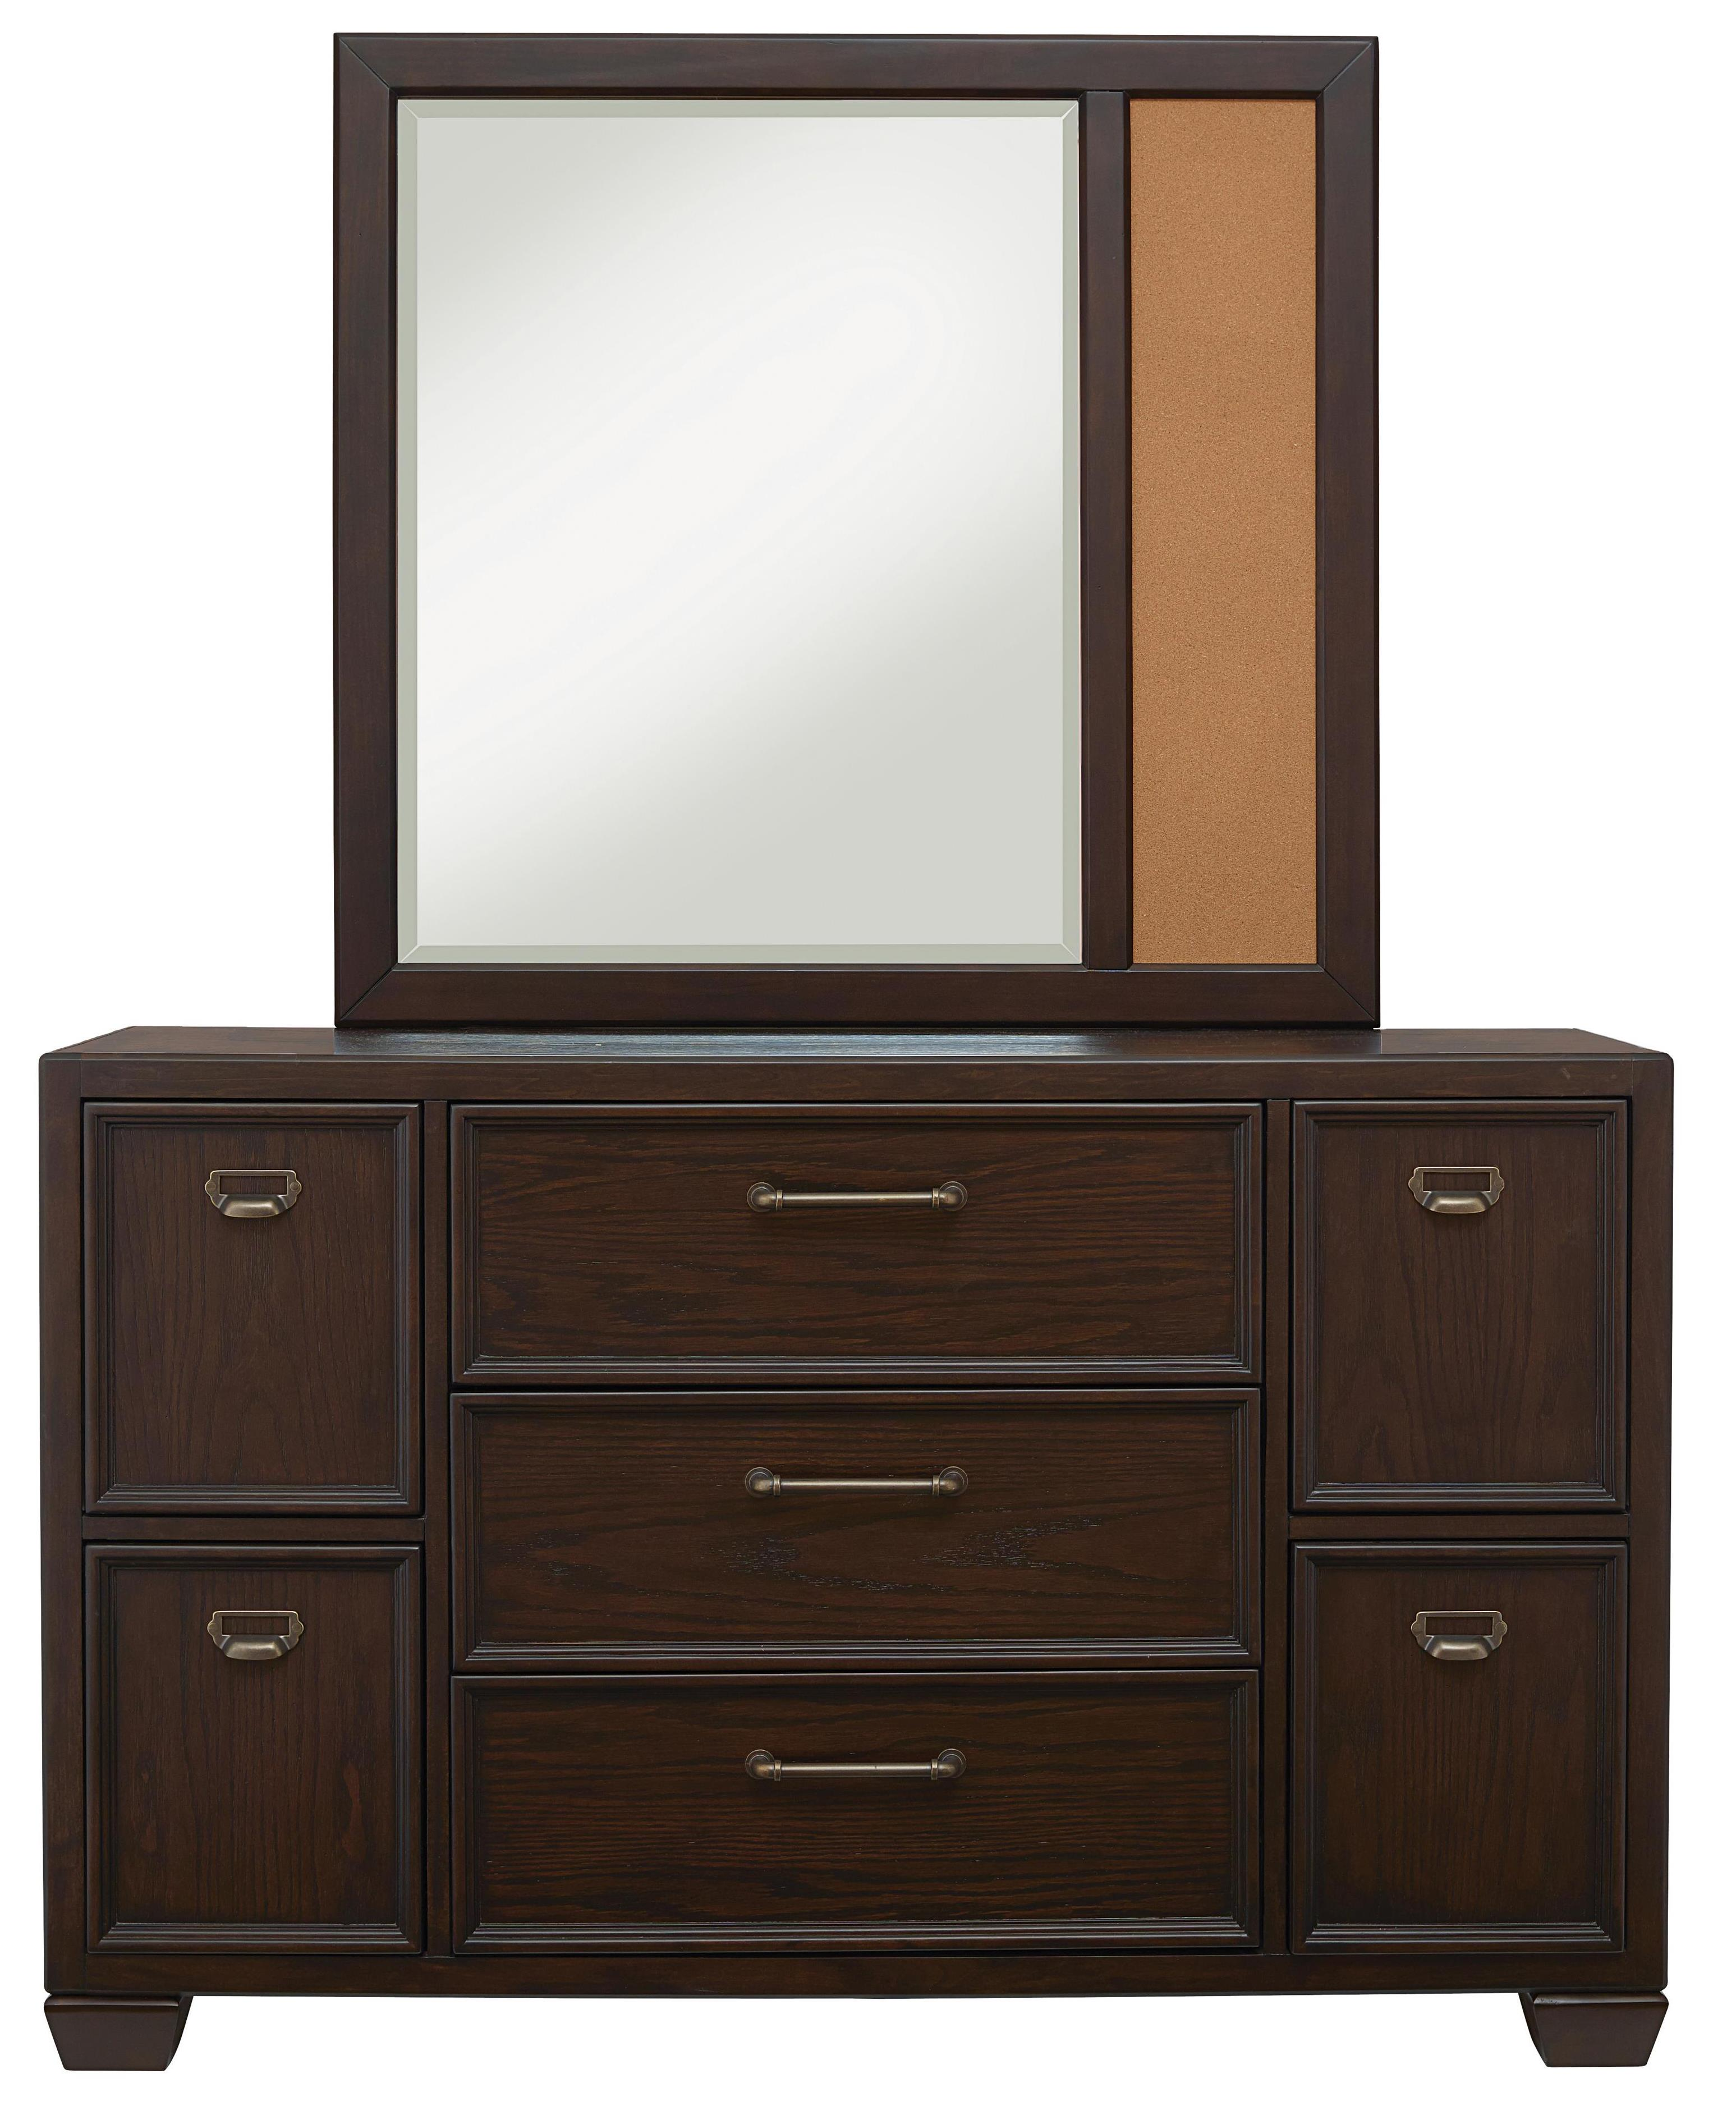 Kidz Gear Mason Dresser and Mirror Set - Item Number: 8872-410+430